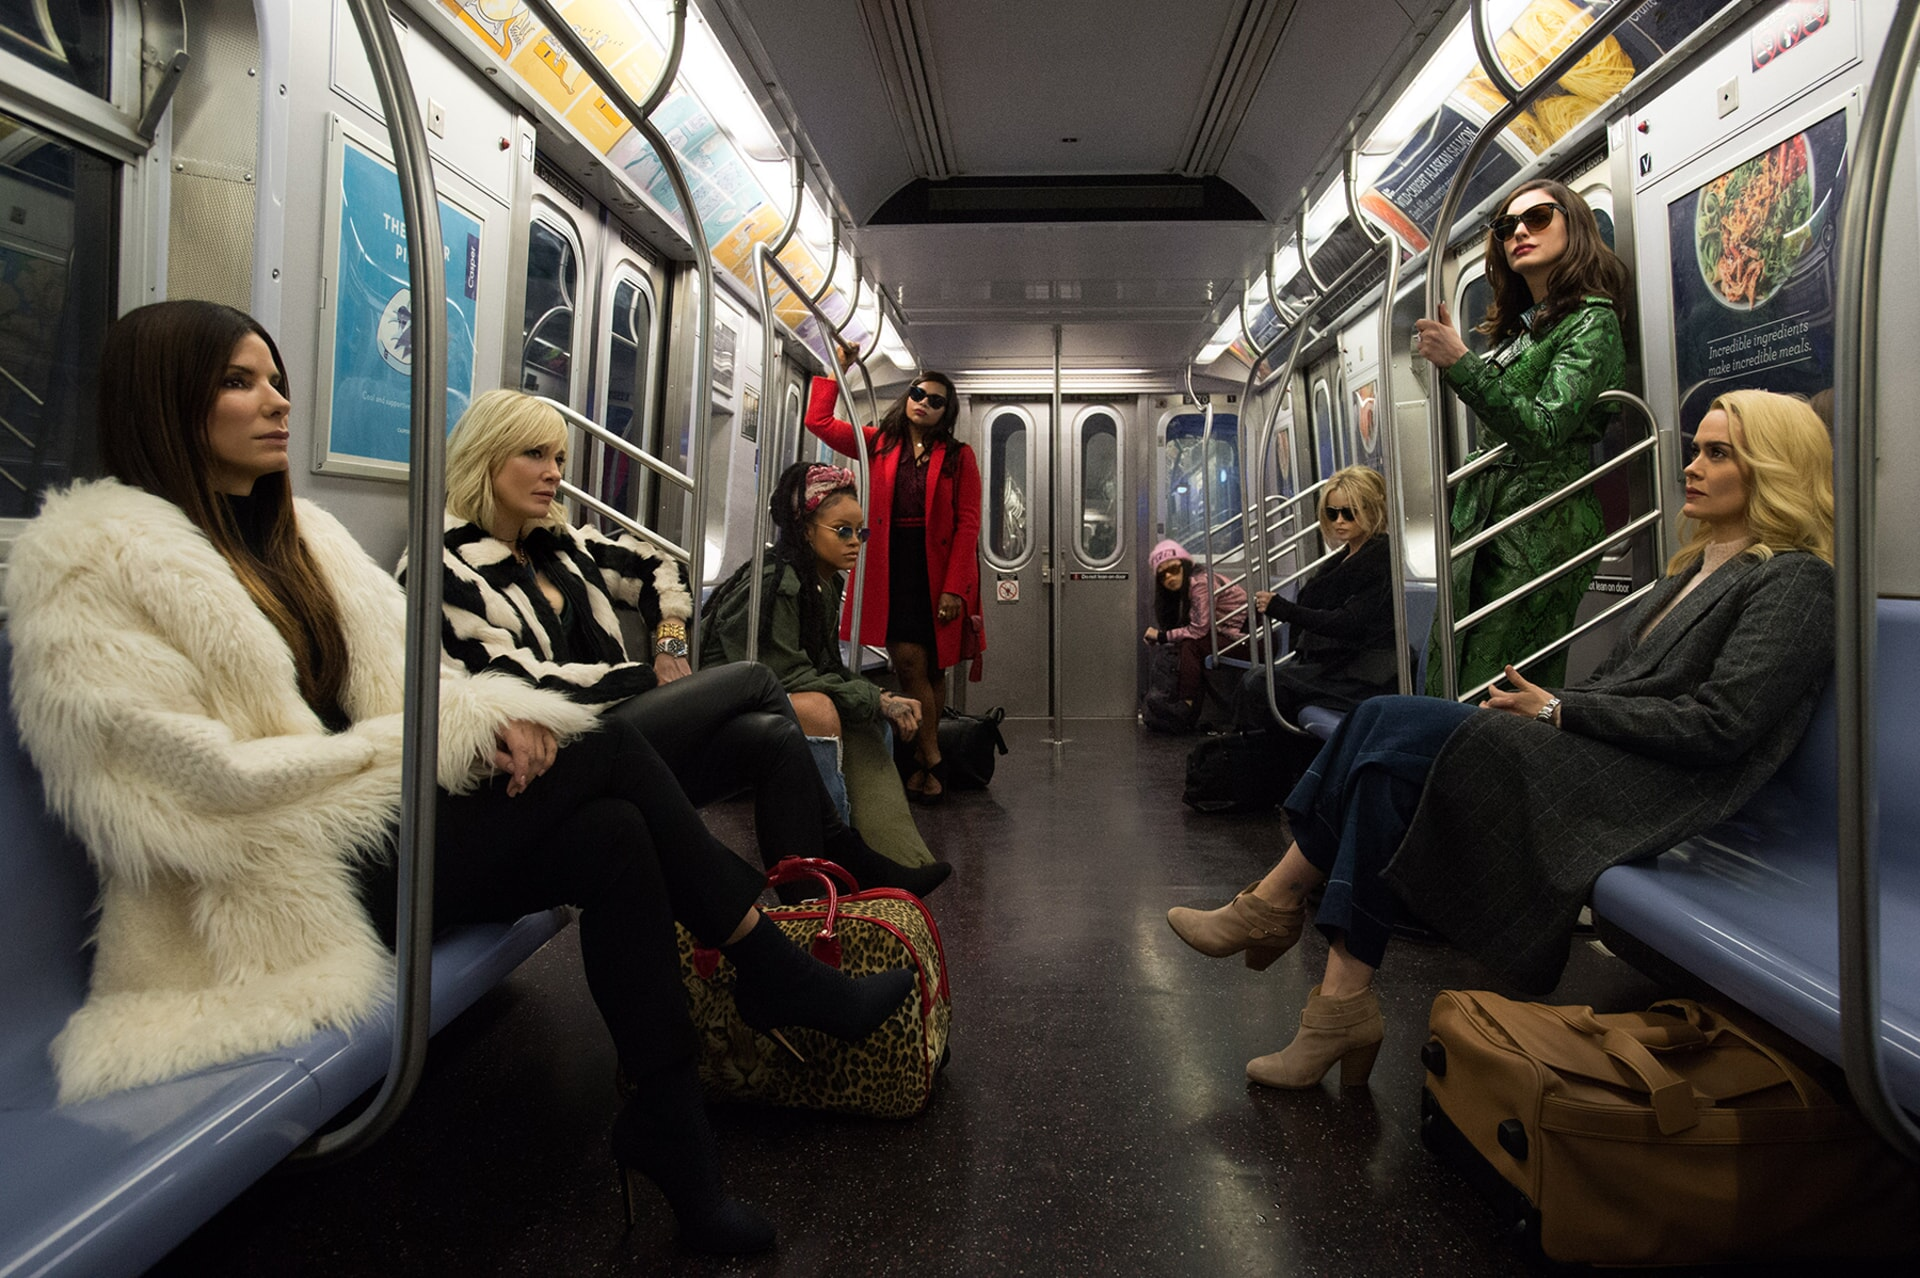 "first look at ""Ocean's 8"" from one of New York City's most iconic locales: the subway. In Summer 2018, the tide will turn as (L-r) Debbie Ocean (SANDRA BULLOCK) attempts to pull off the heist of the century at New York City's star-studded annual Met Gala. Her first stop is to assemble the perfect crew: Lou (CATE BLANCHETT); Nine Ball (RIHANNA); Amita (MINDY KALING); Constance (AWKWAFINA); Rose (HELENA BONHAM CARTER); Daphne Kluger (ANNE HATHAWAY); and Tammy (SARAH PAULSON)."